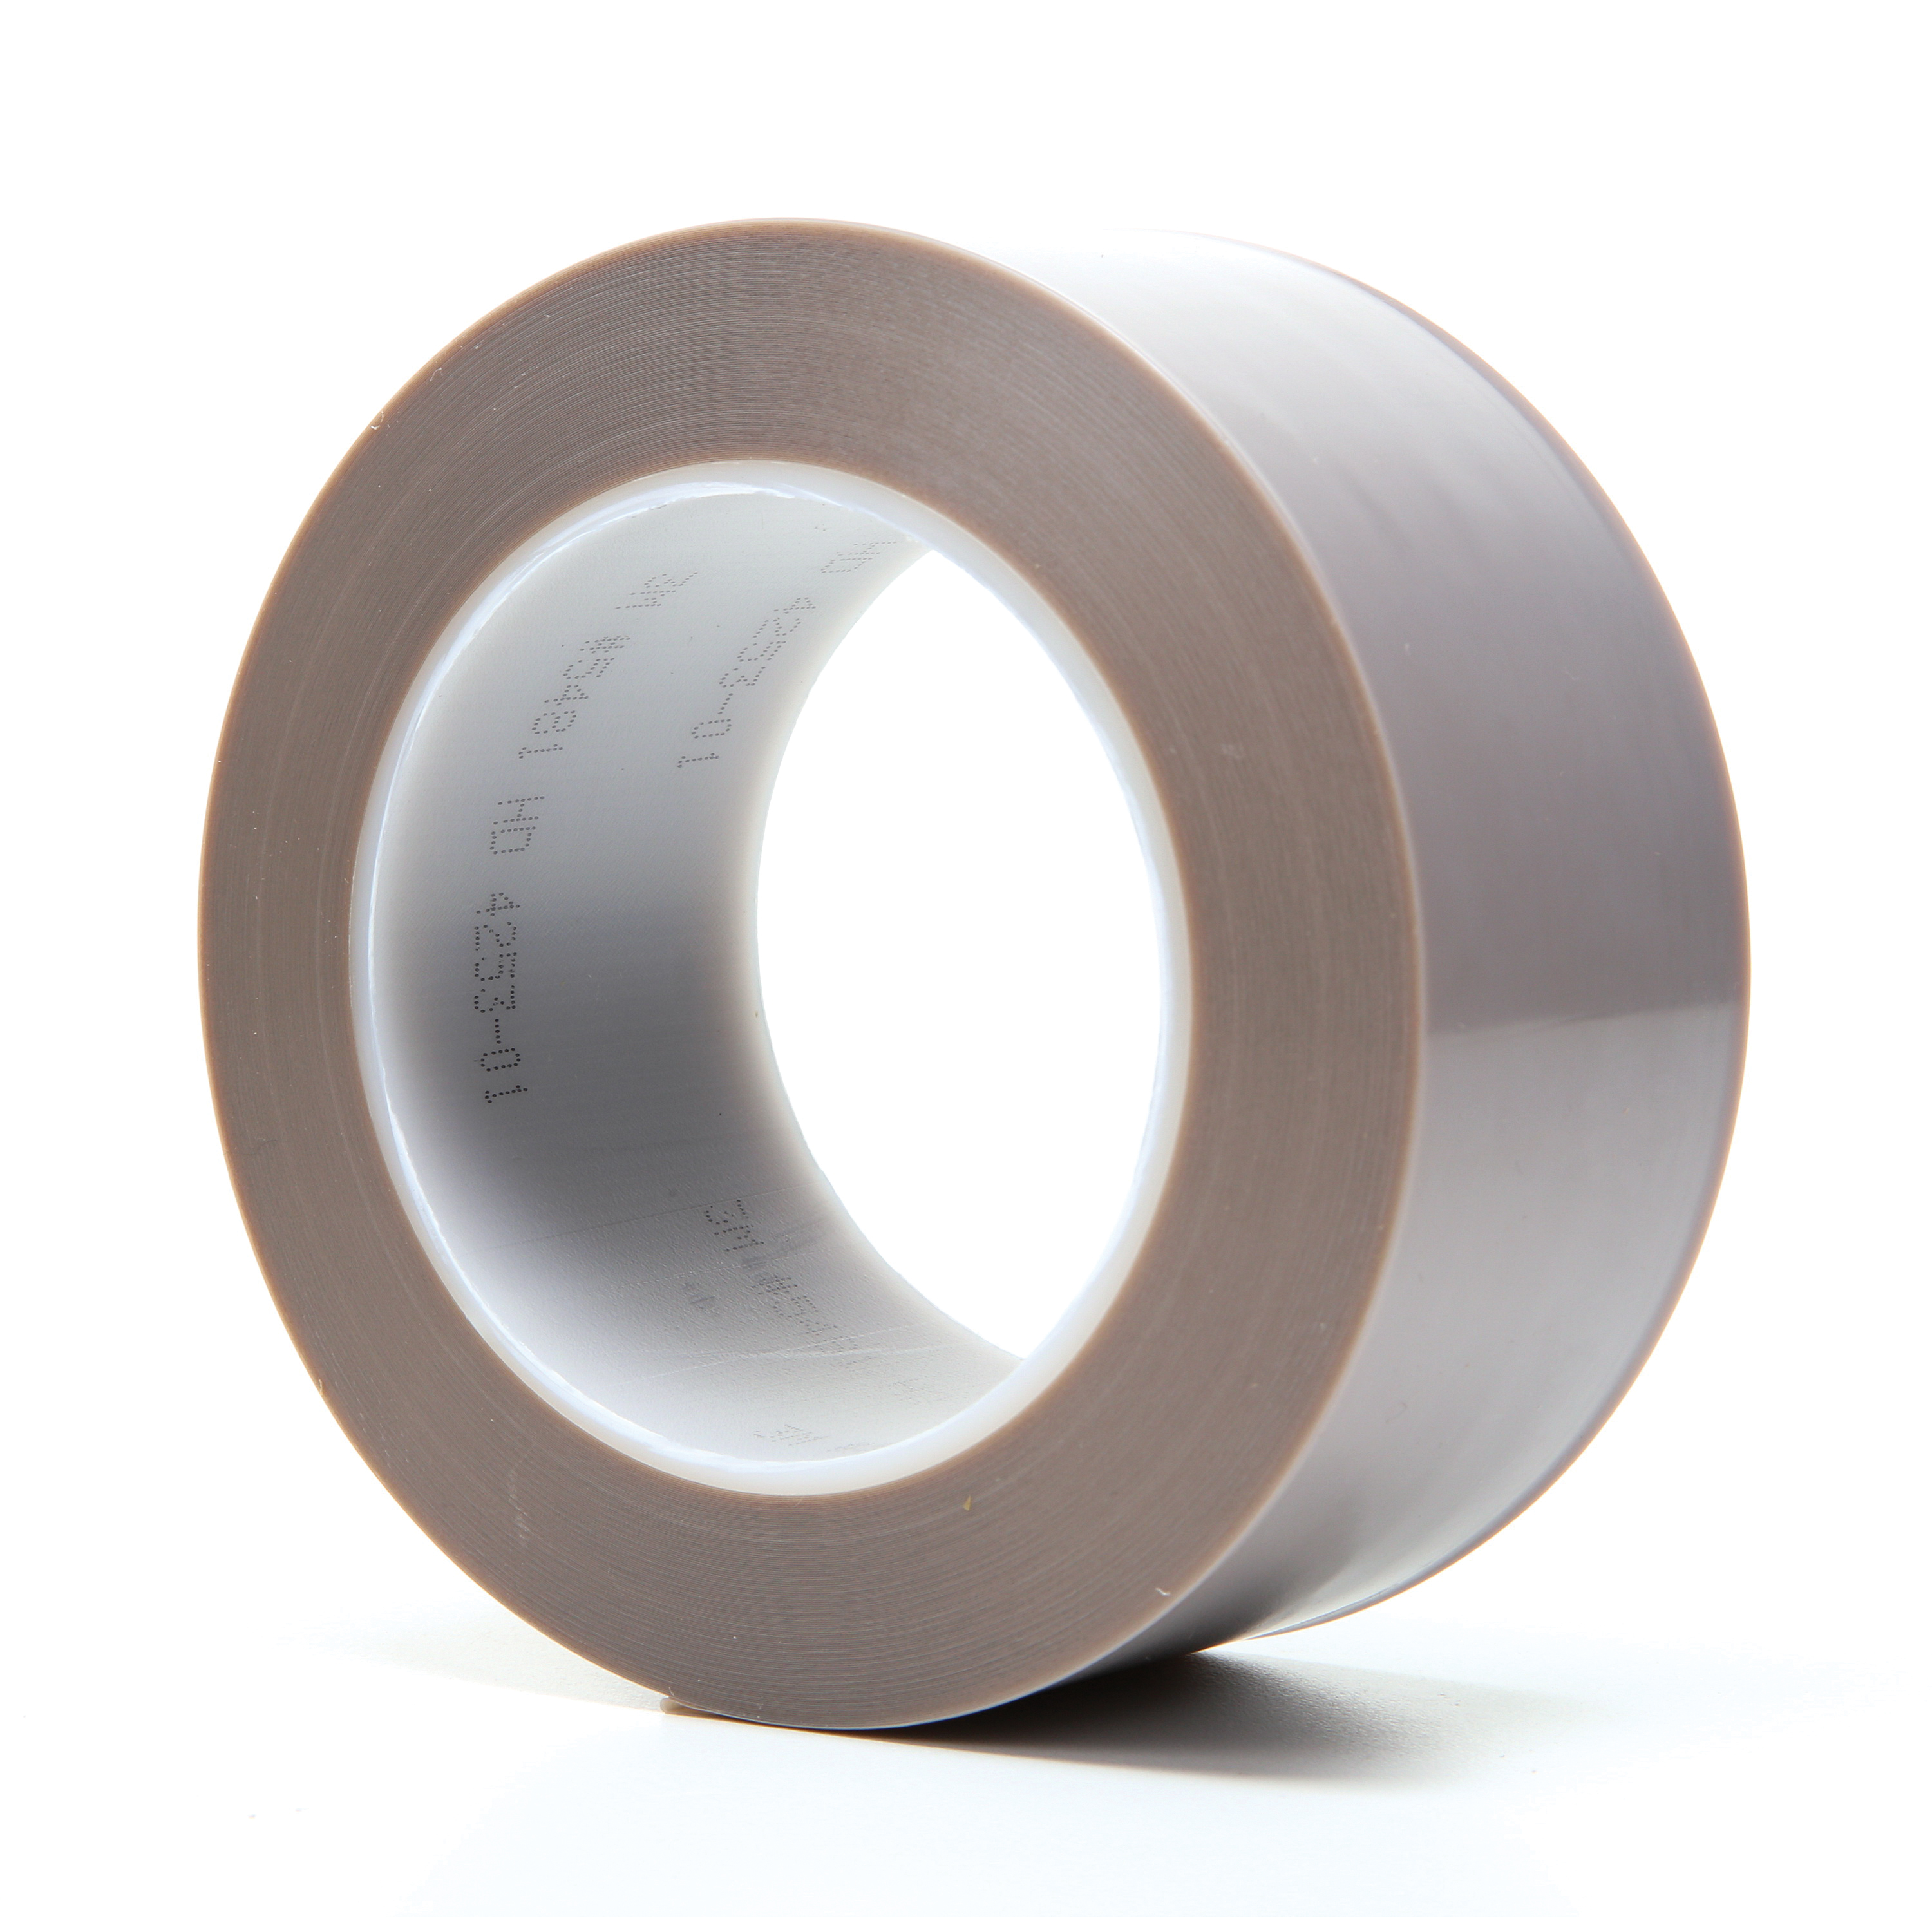 3M™ 021200-16132 Heavy Duty Film Tape, 36 yd L x 2 in W, 6.8 mil THK, Silicone Adhesive, 5 mil Skived PTFE Backing, Gray